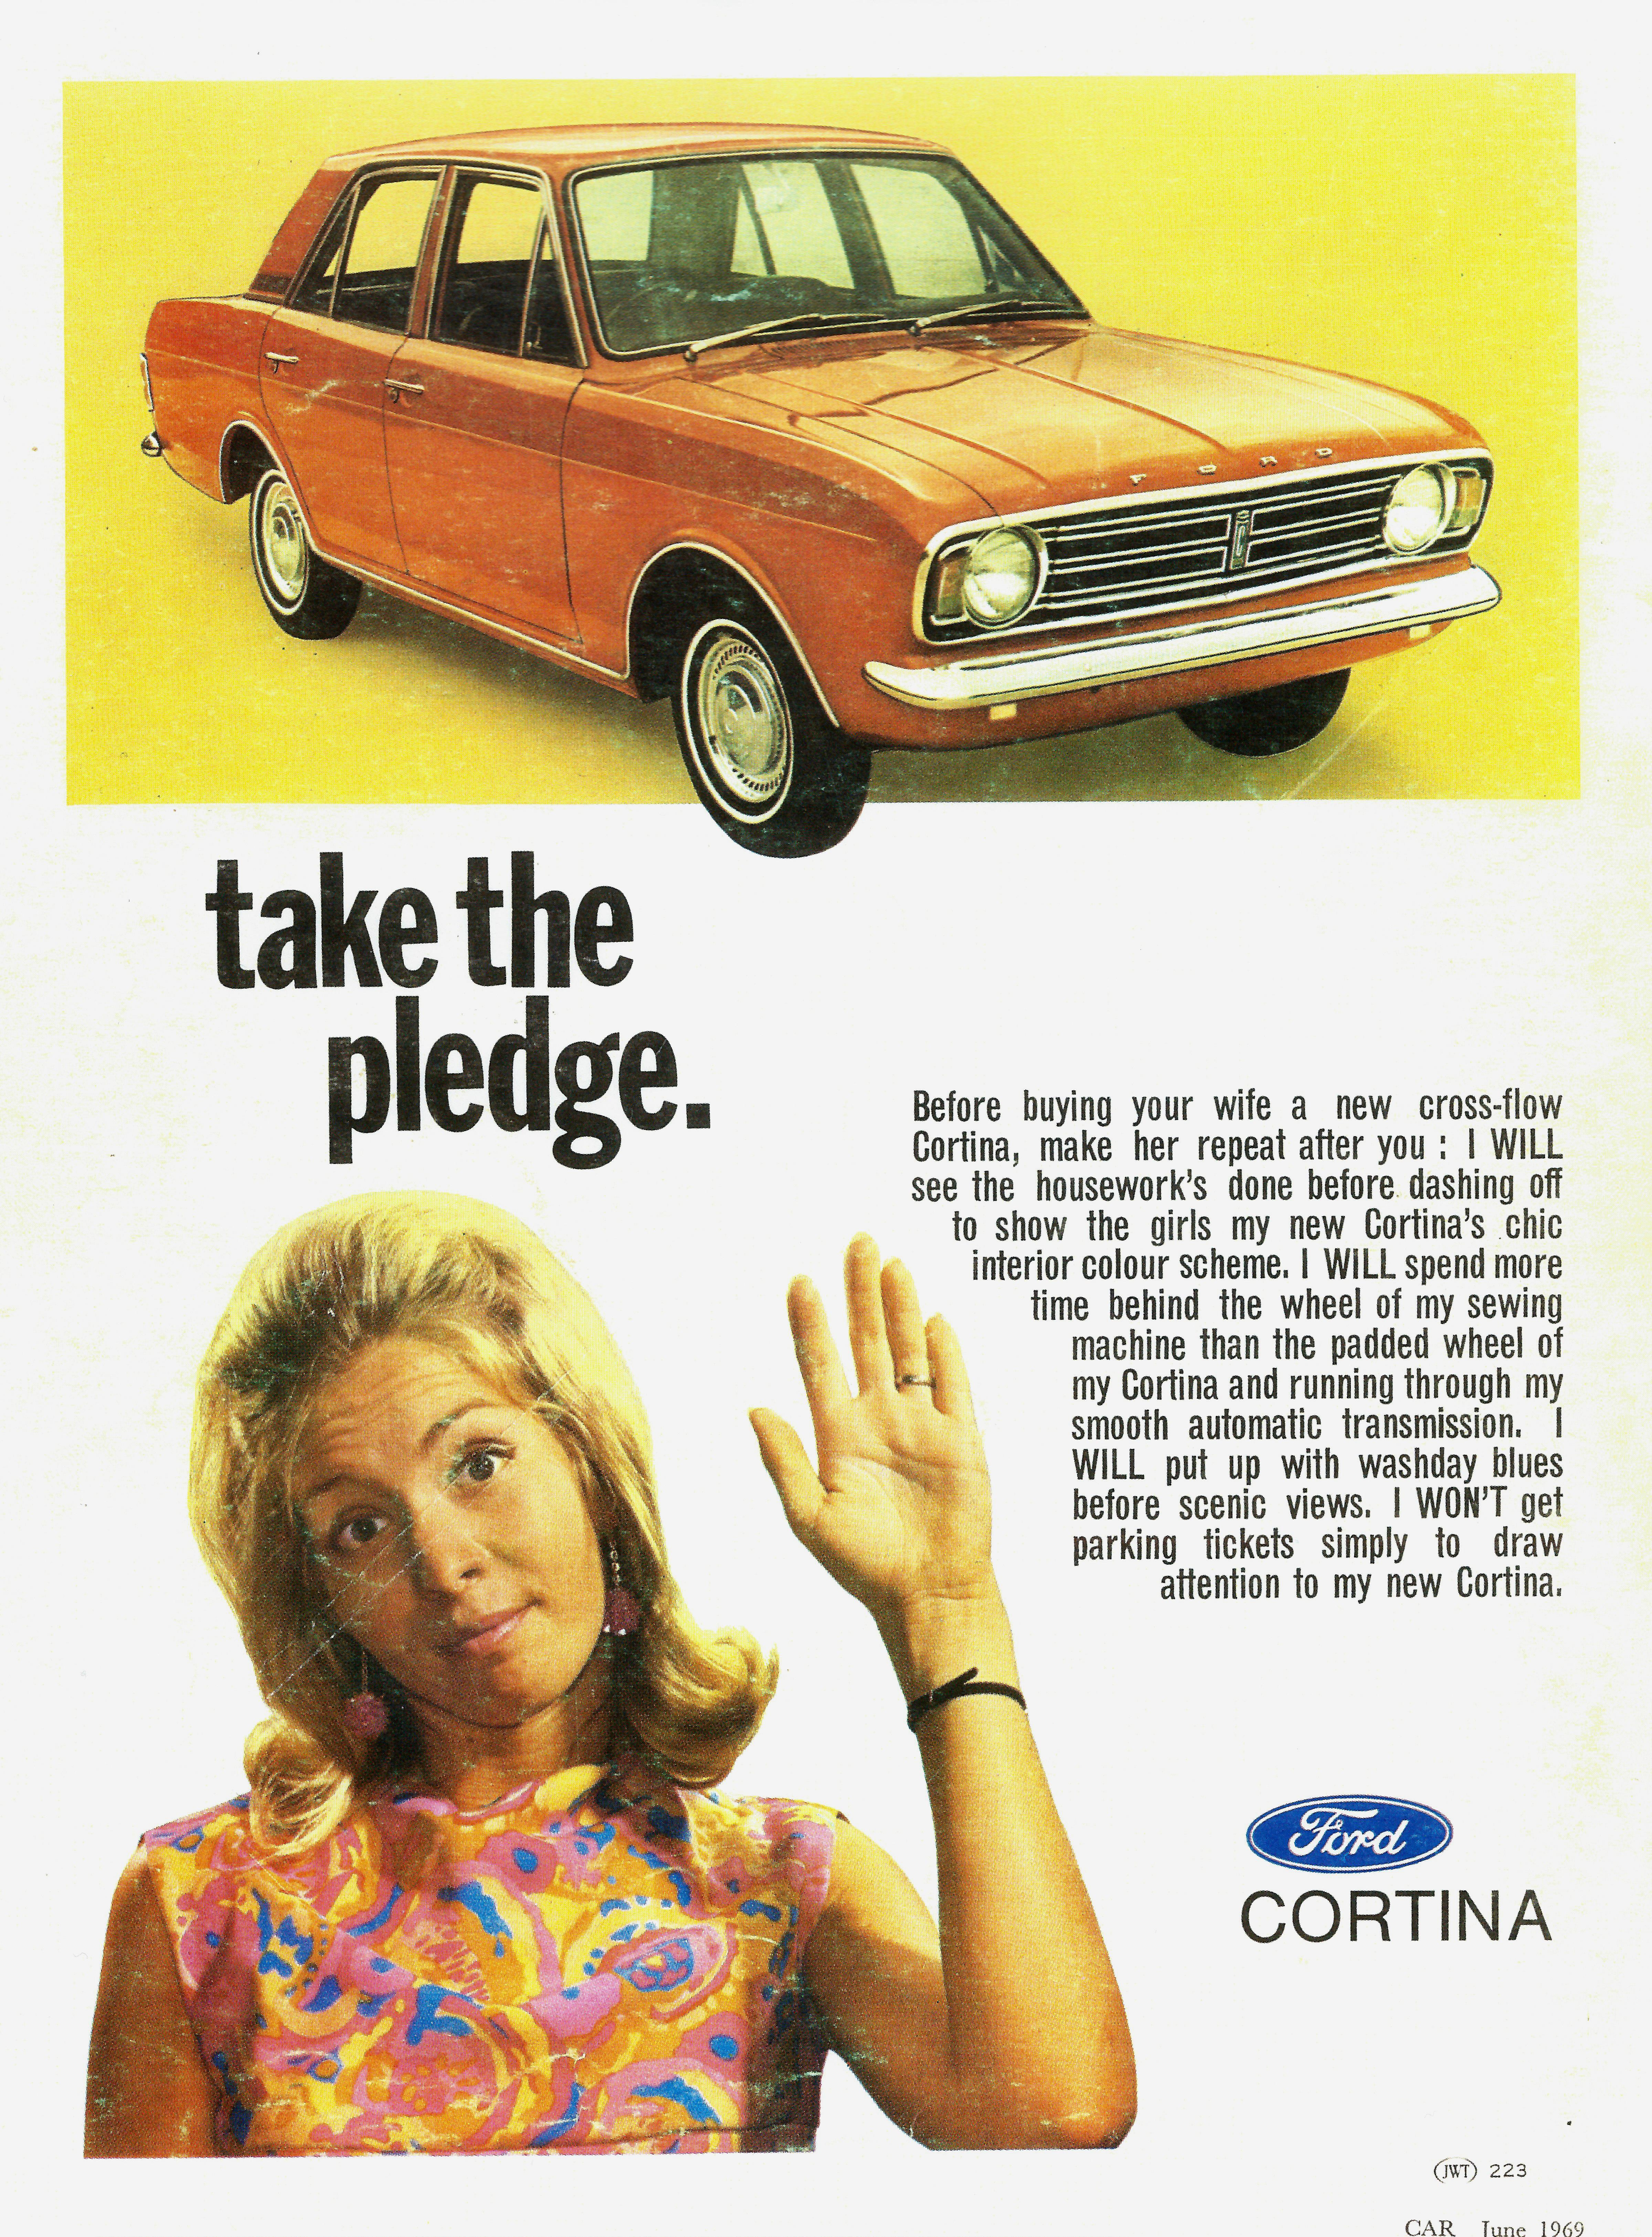 South African Ford Cortina ad. Not only were they racist but sexist too.